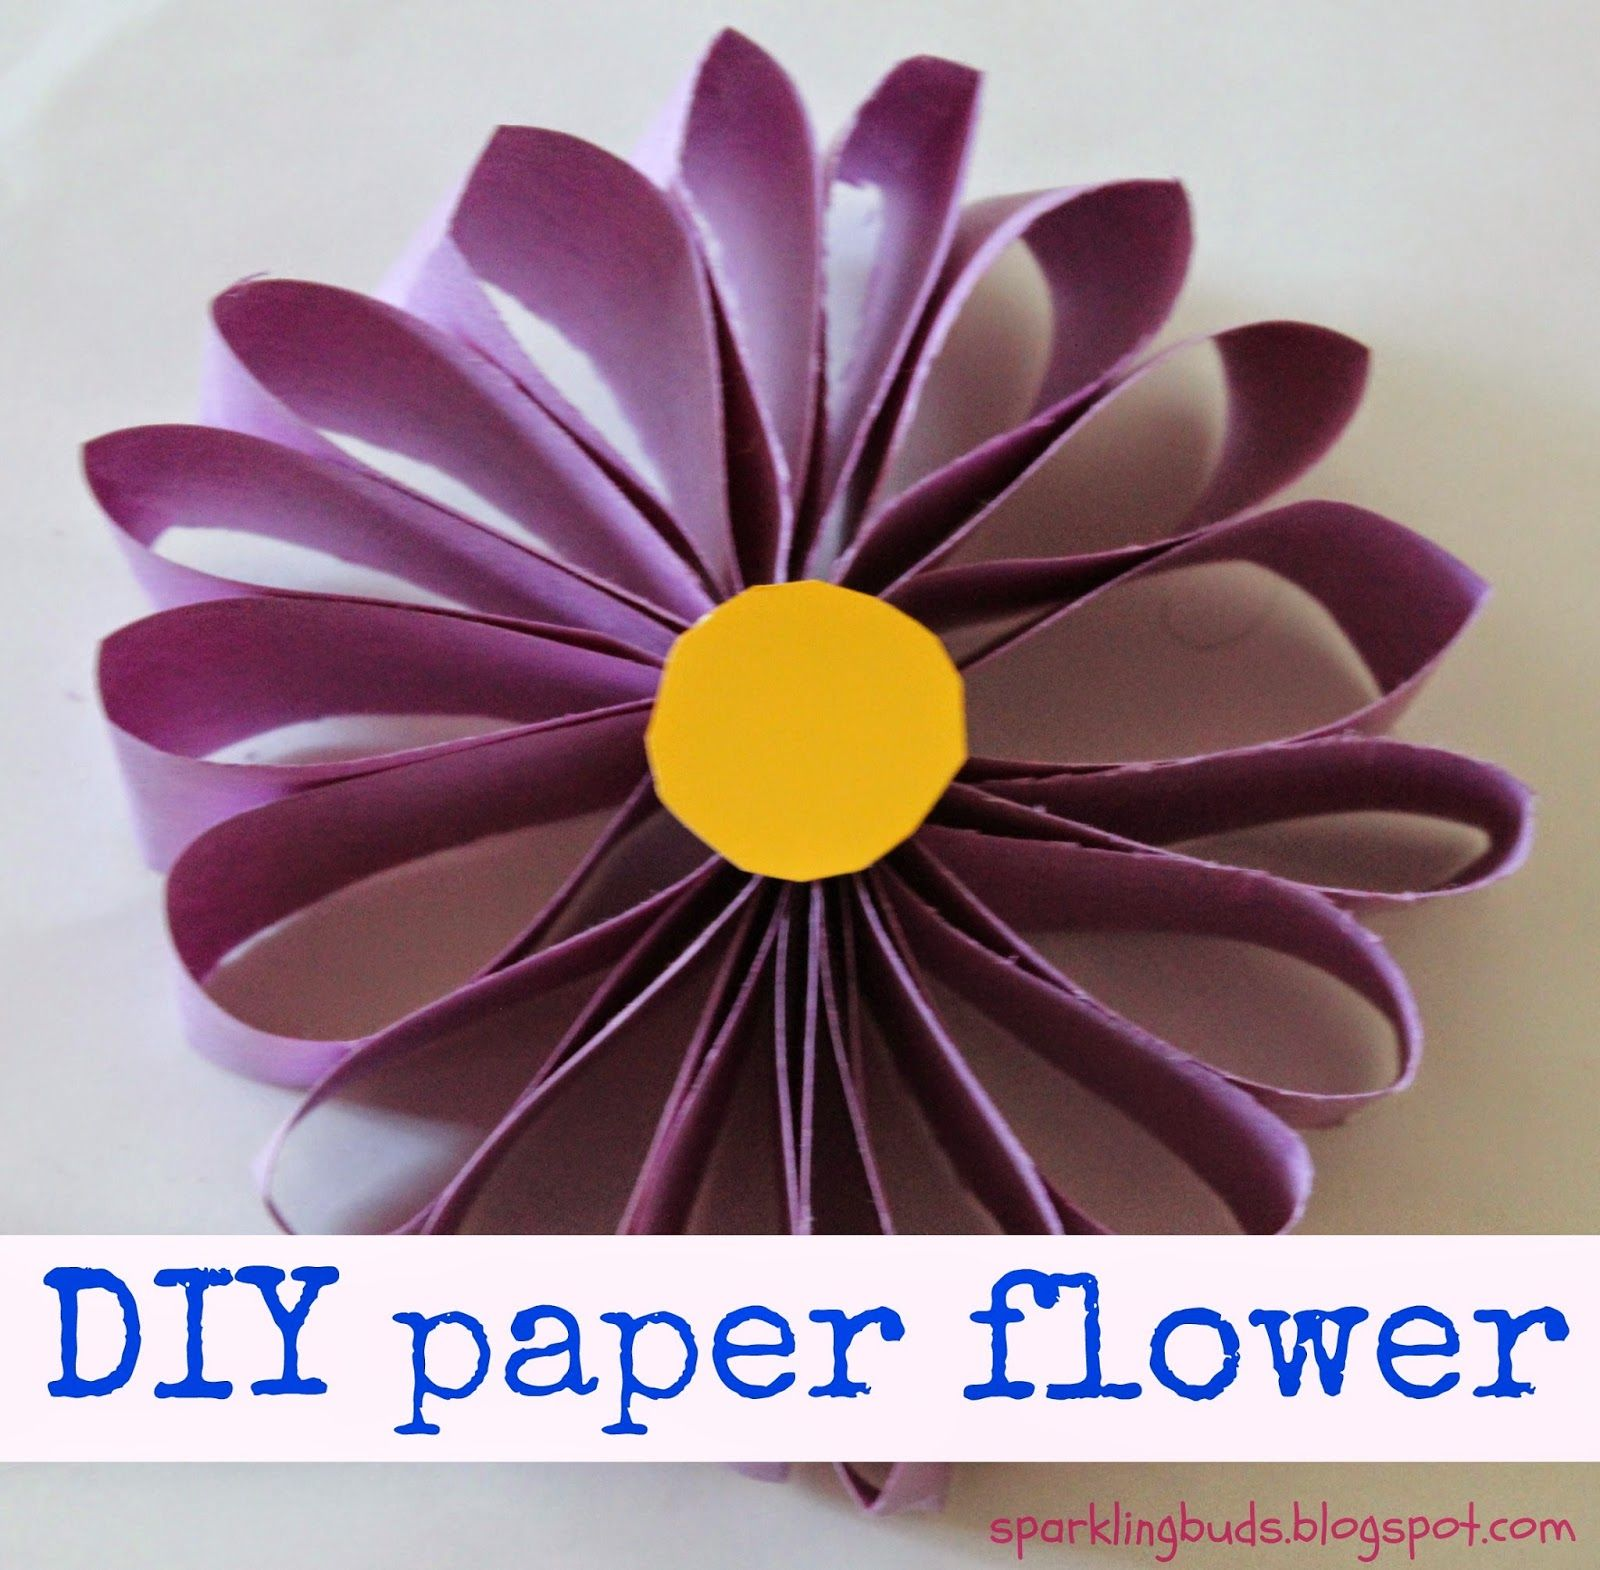 Paper cup flowers make a wonderful spring craft for preschoolers paper cup flowers make a wonderful spring craft for preschoolers and kids of all ages jeuxipadfo Image collections